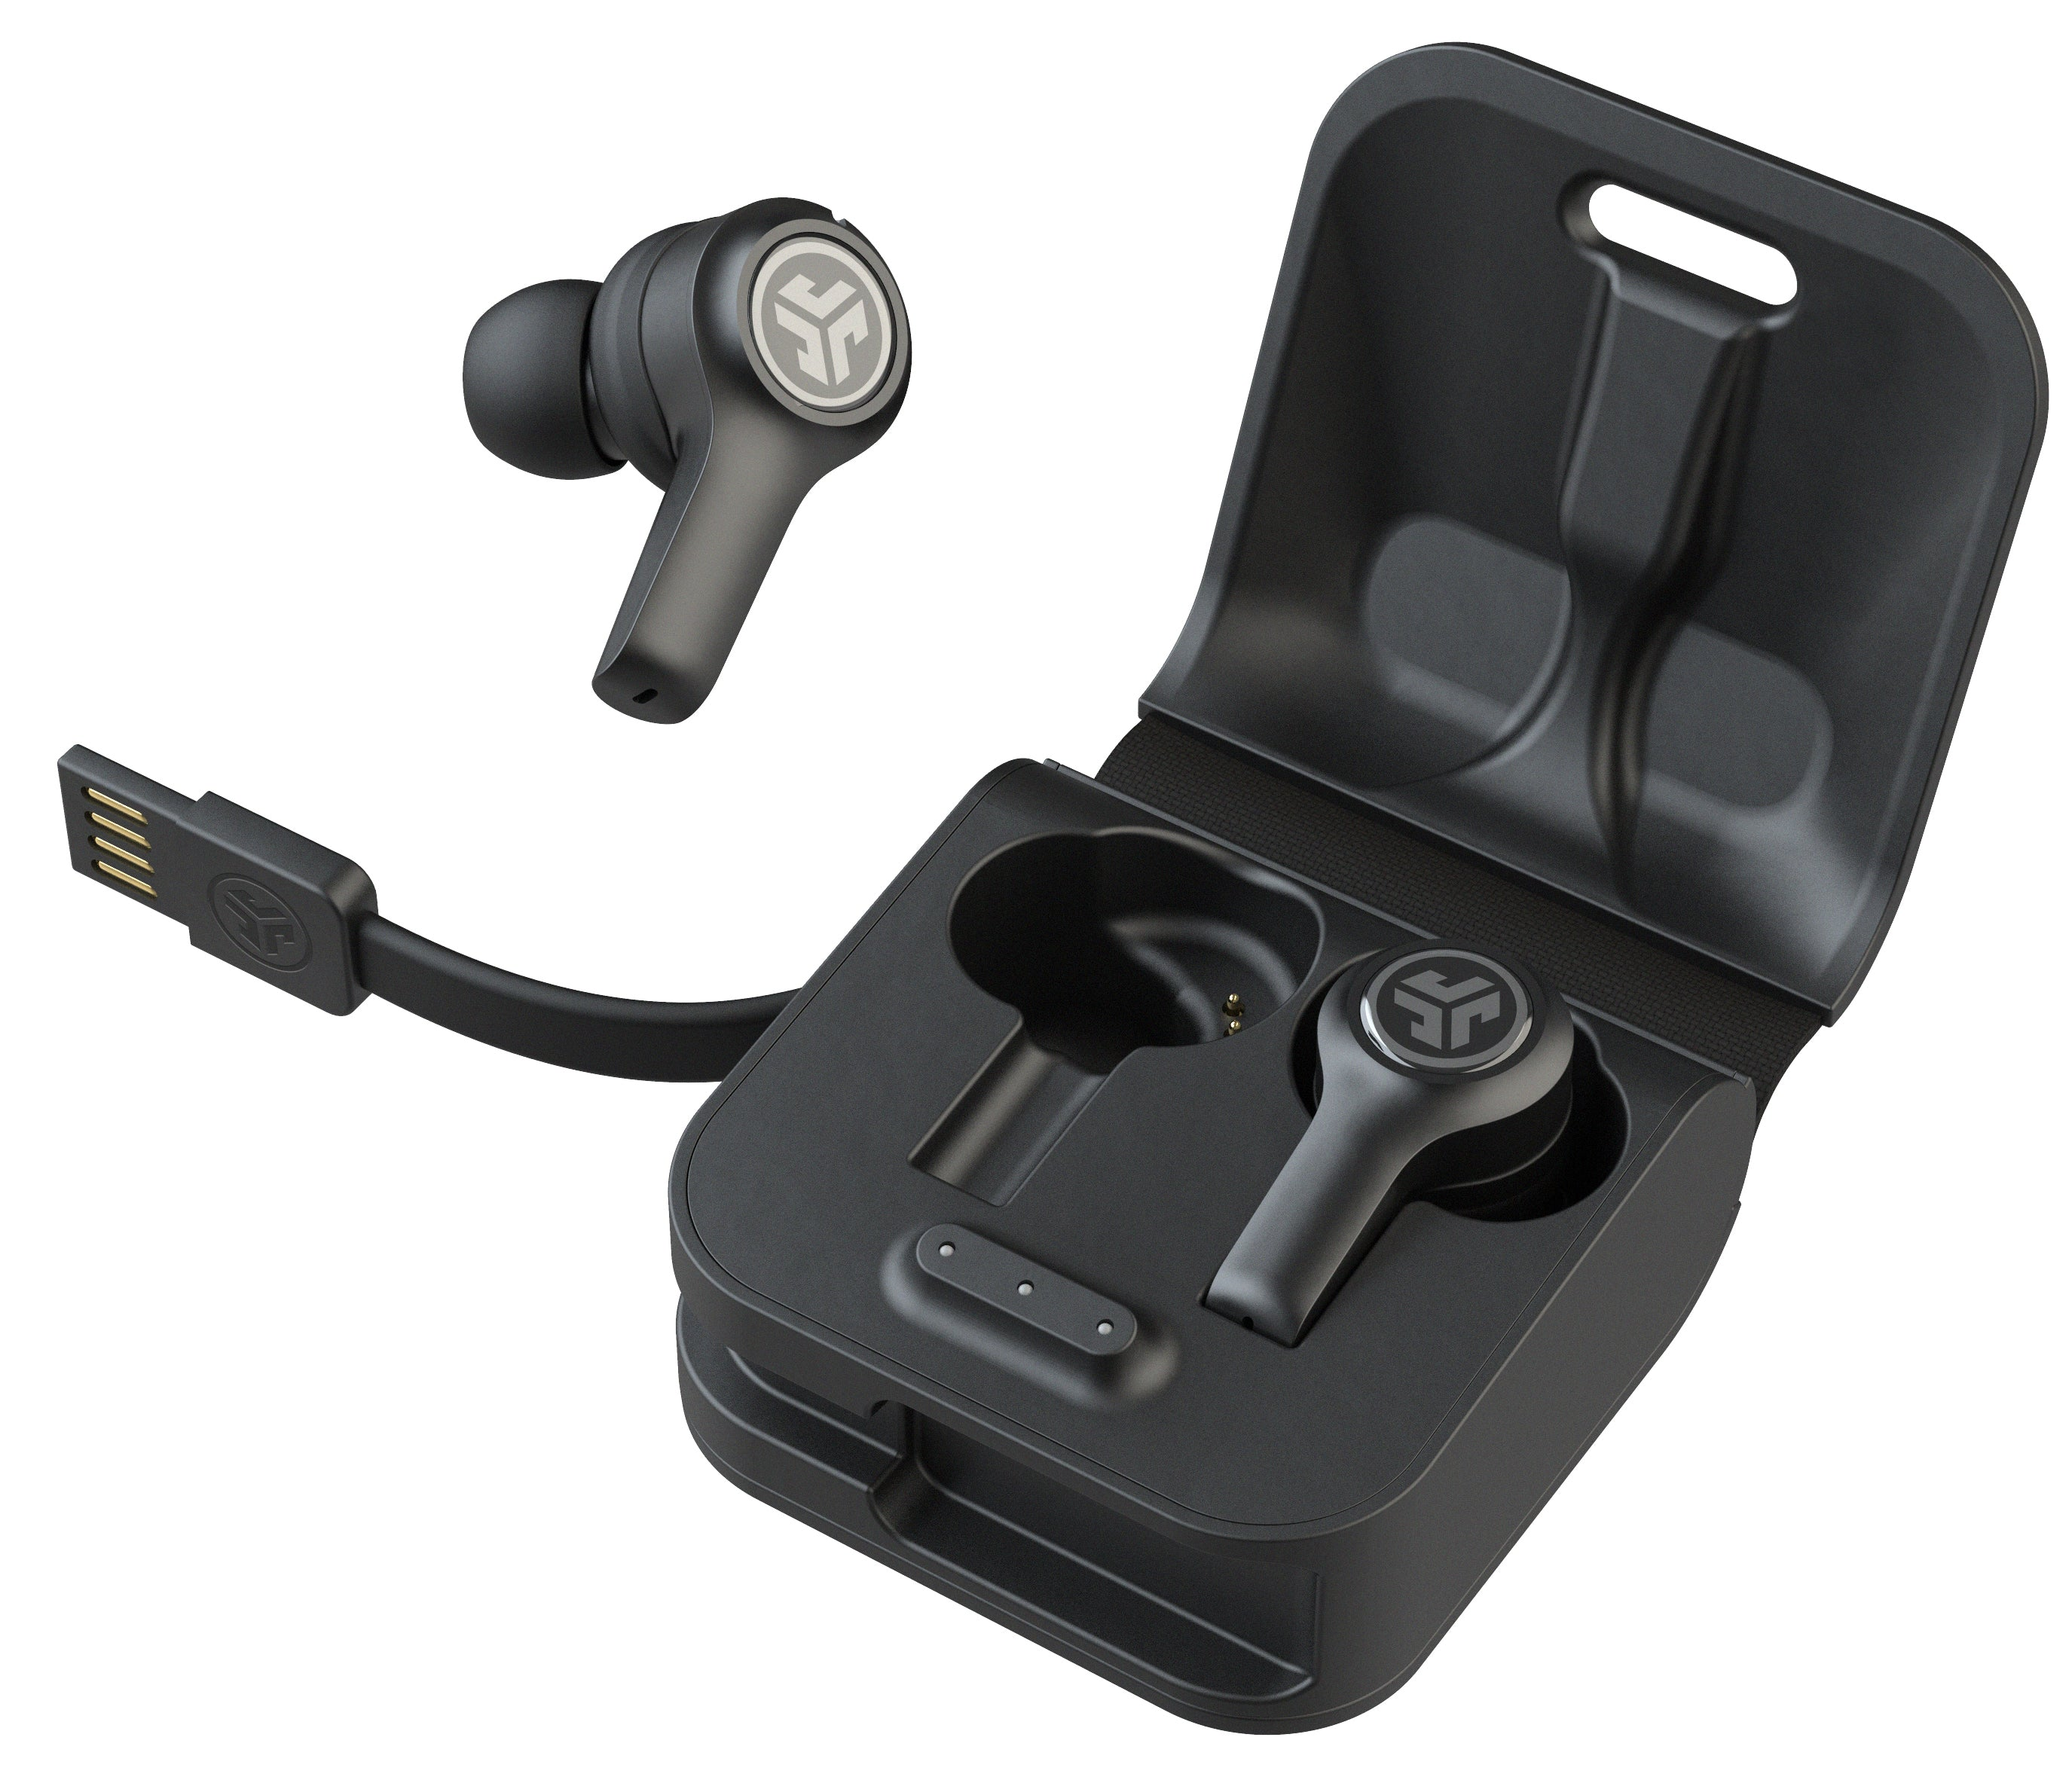 JBuds Air Executive True Wireless Oordopjes met oplaadetui